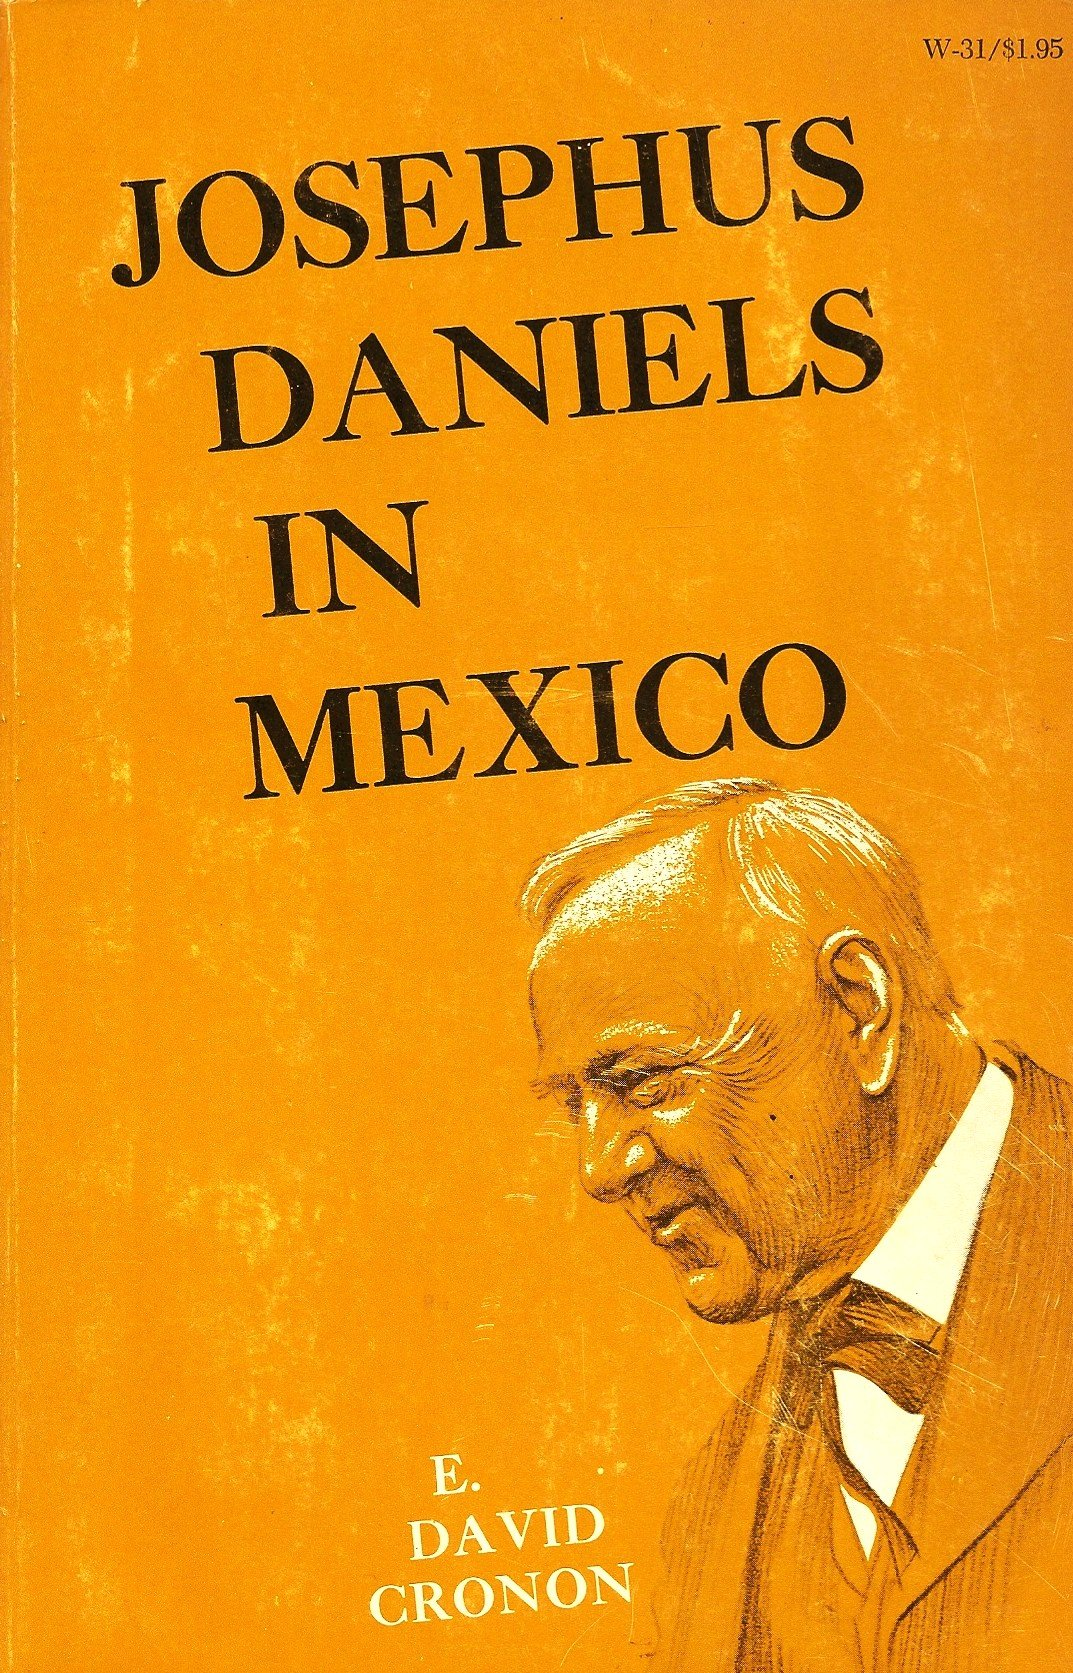 Josephus Daniels in Mexico, Cronon, E. David